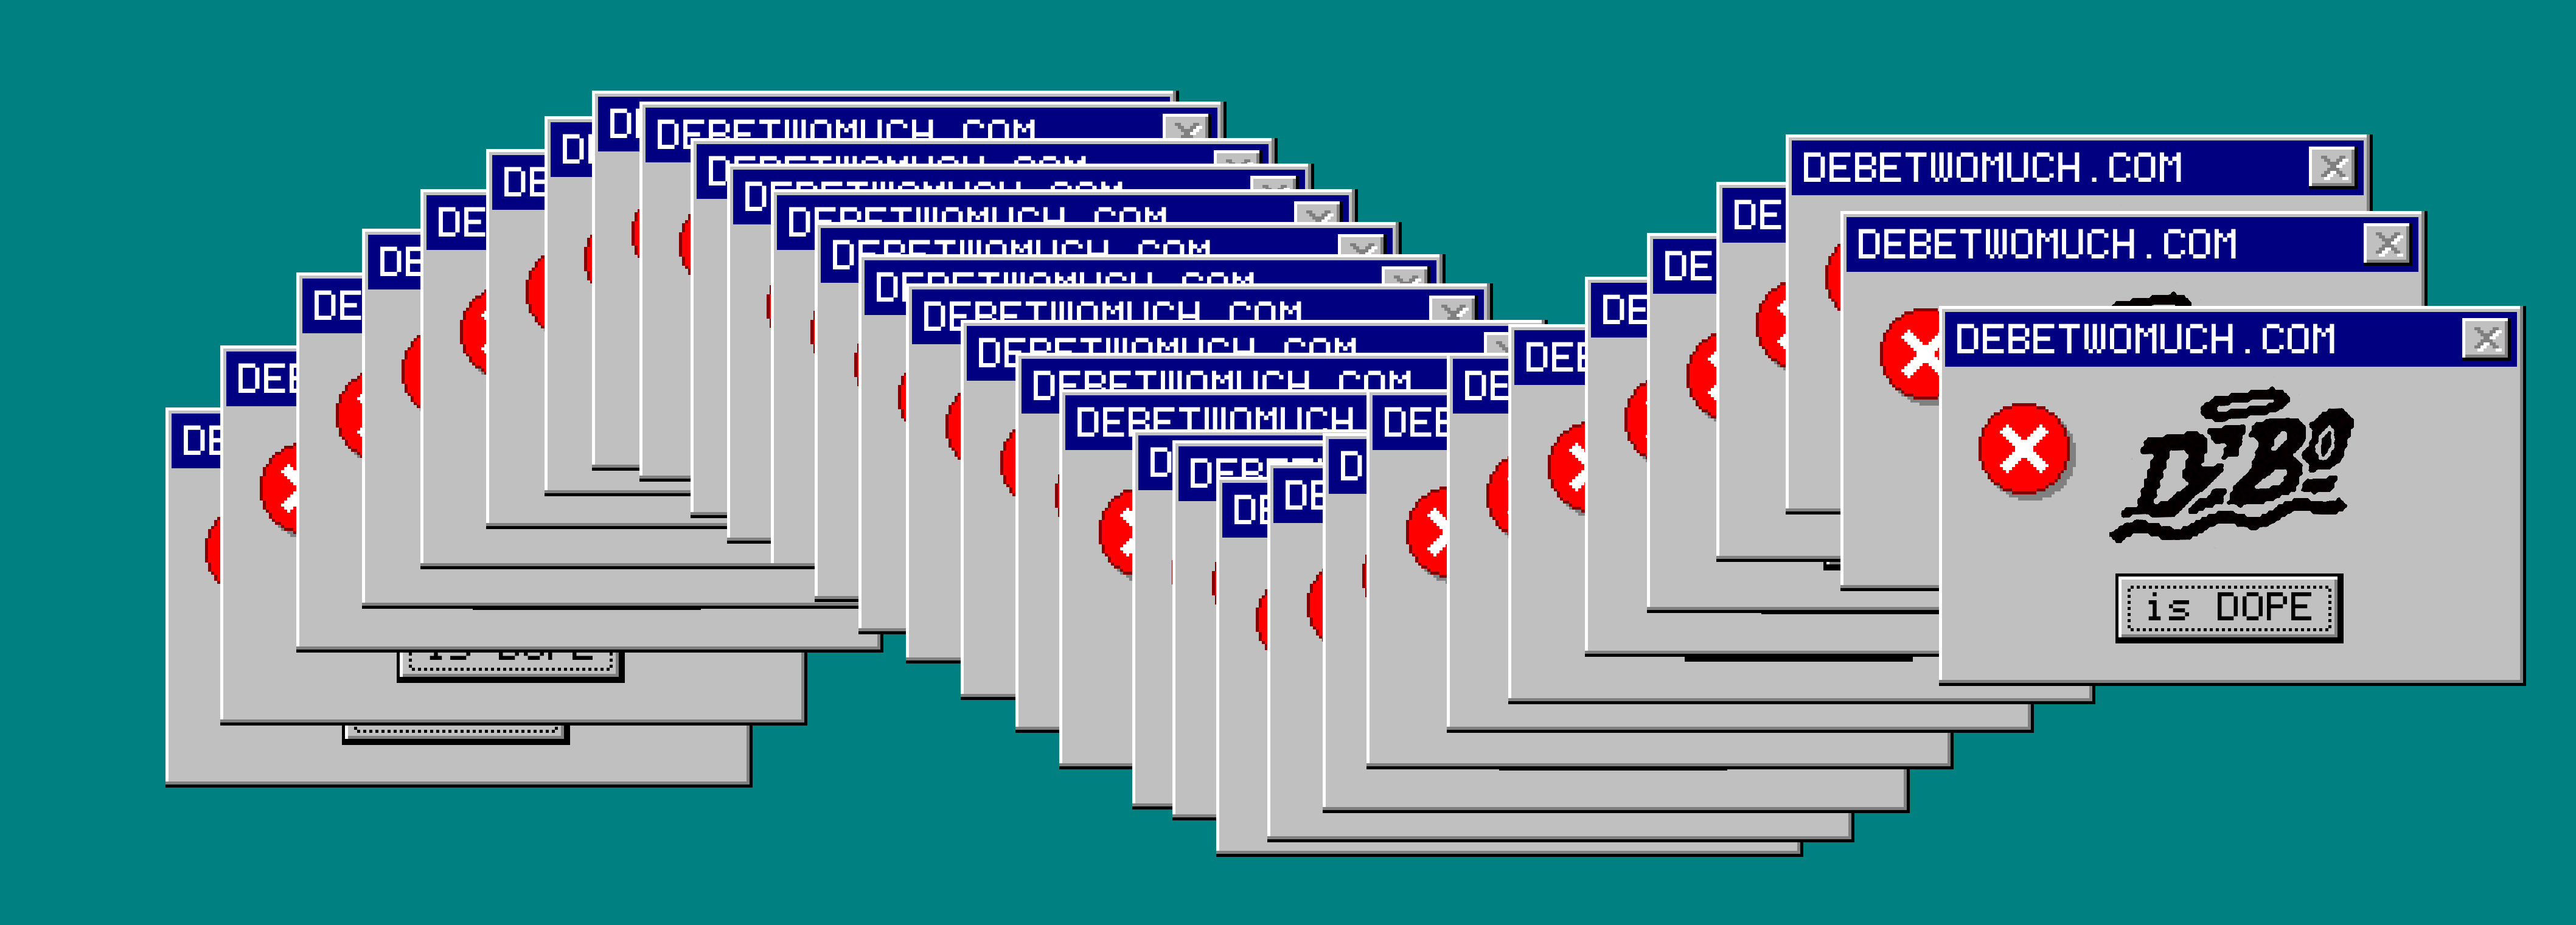 Windows 95 glitch